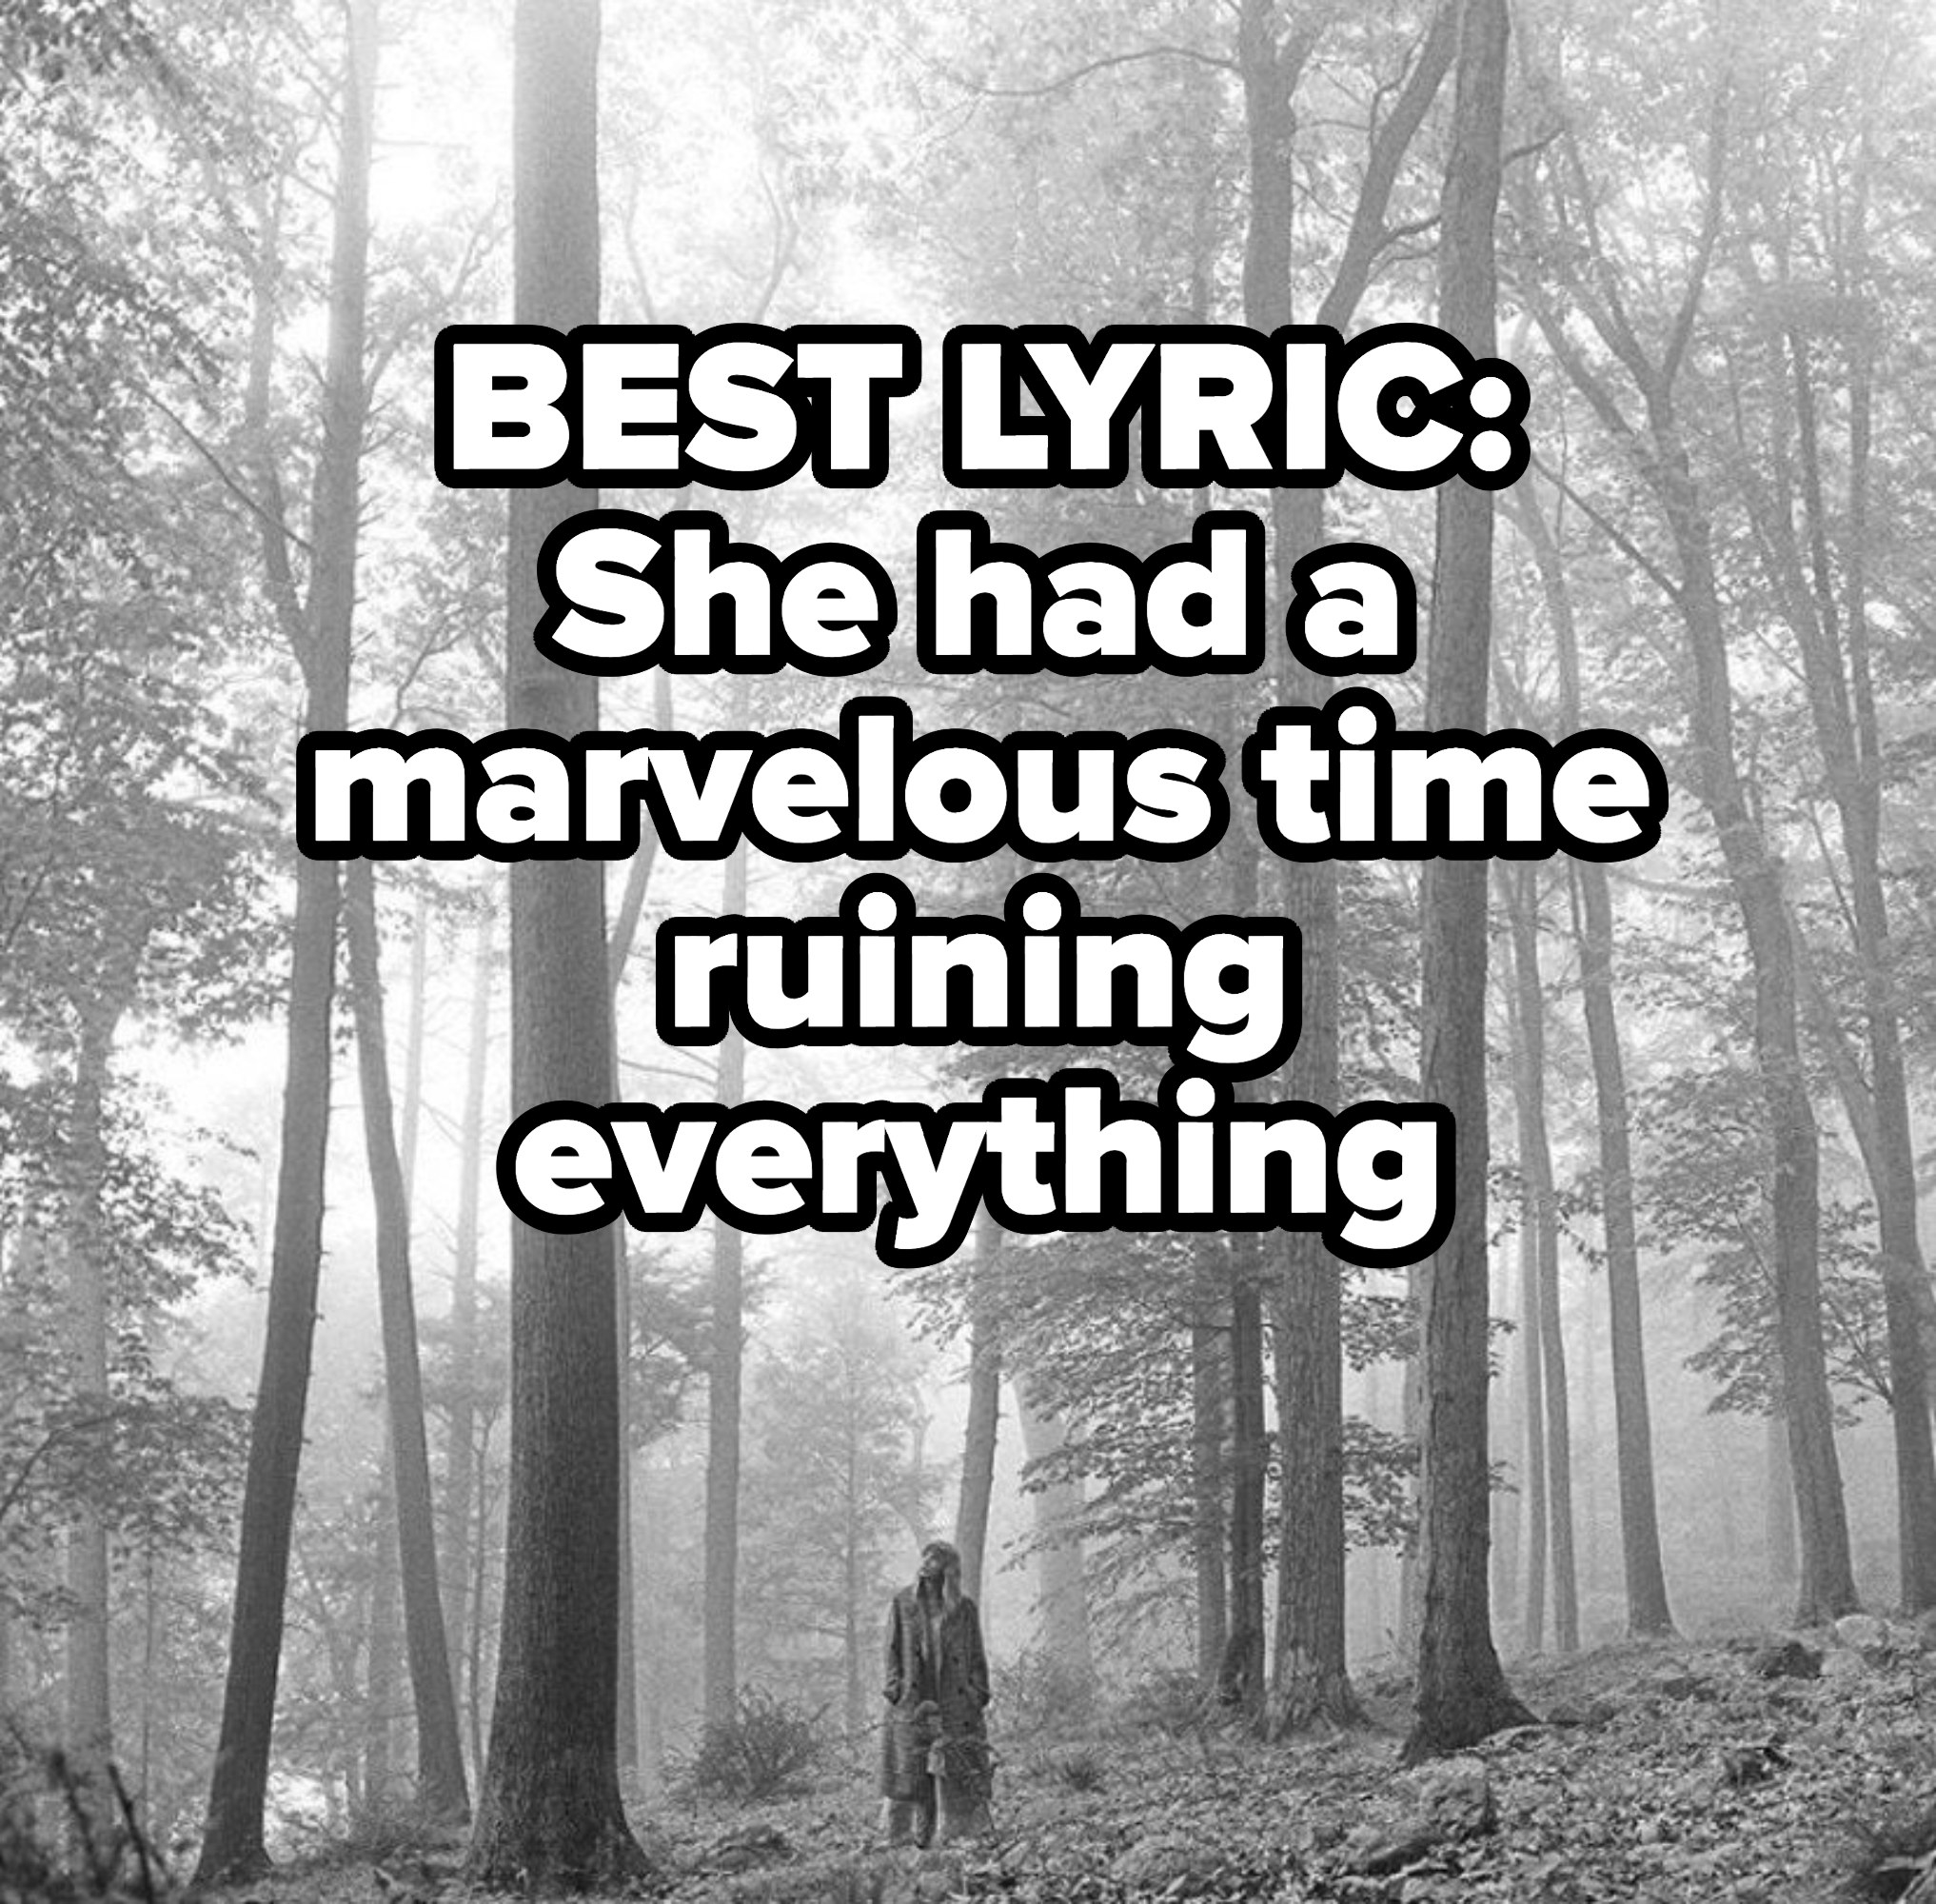 BEST LYRIC: She had a marvelous time ruining everything